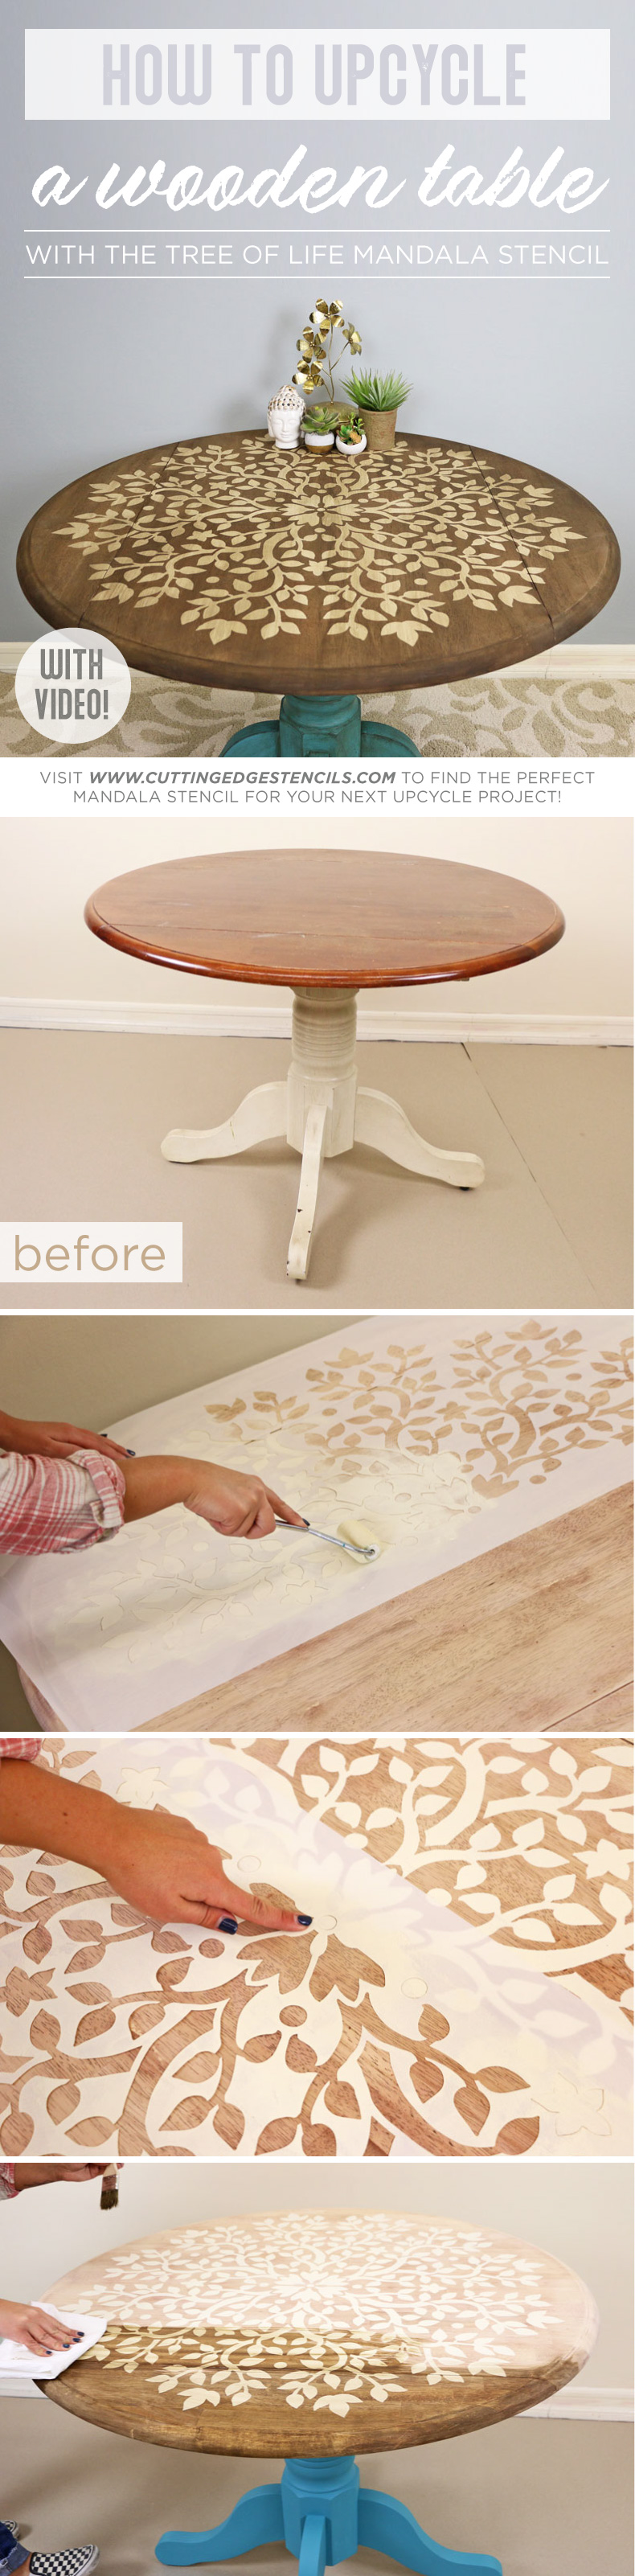 How to Upcycle Wooden Table